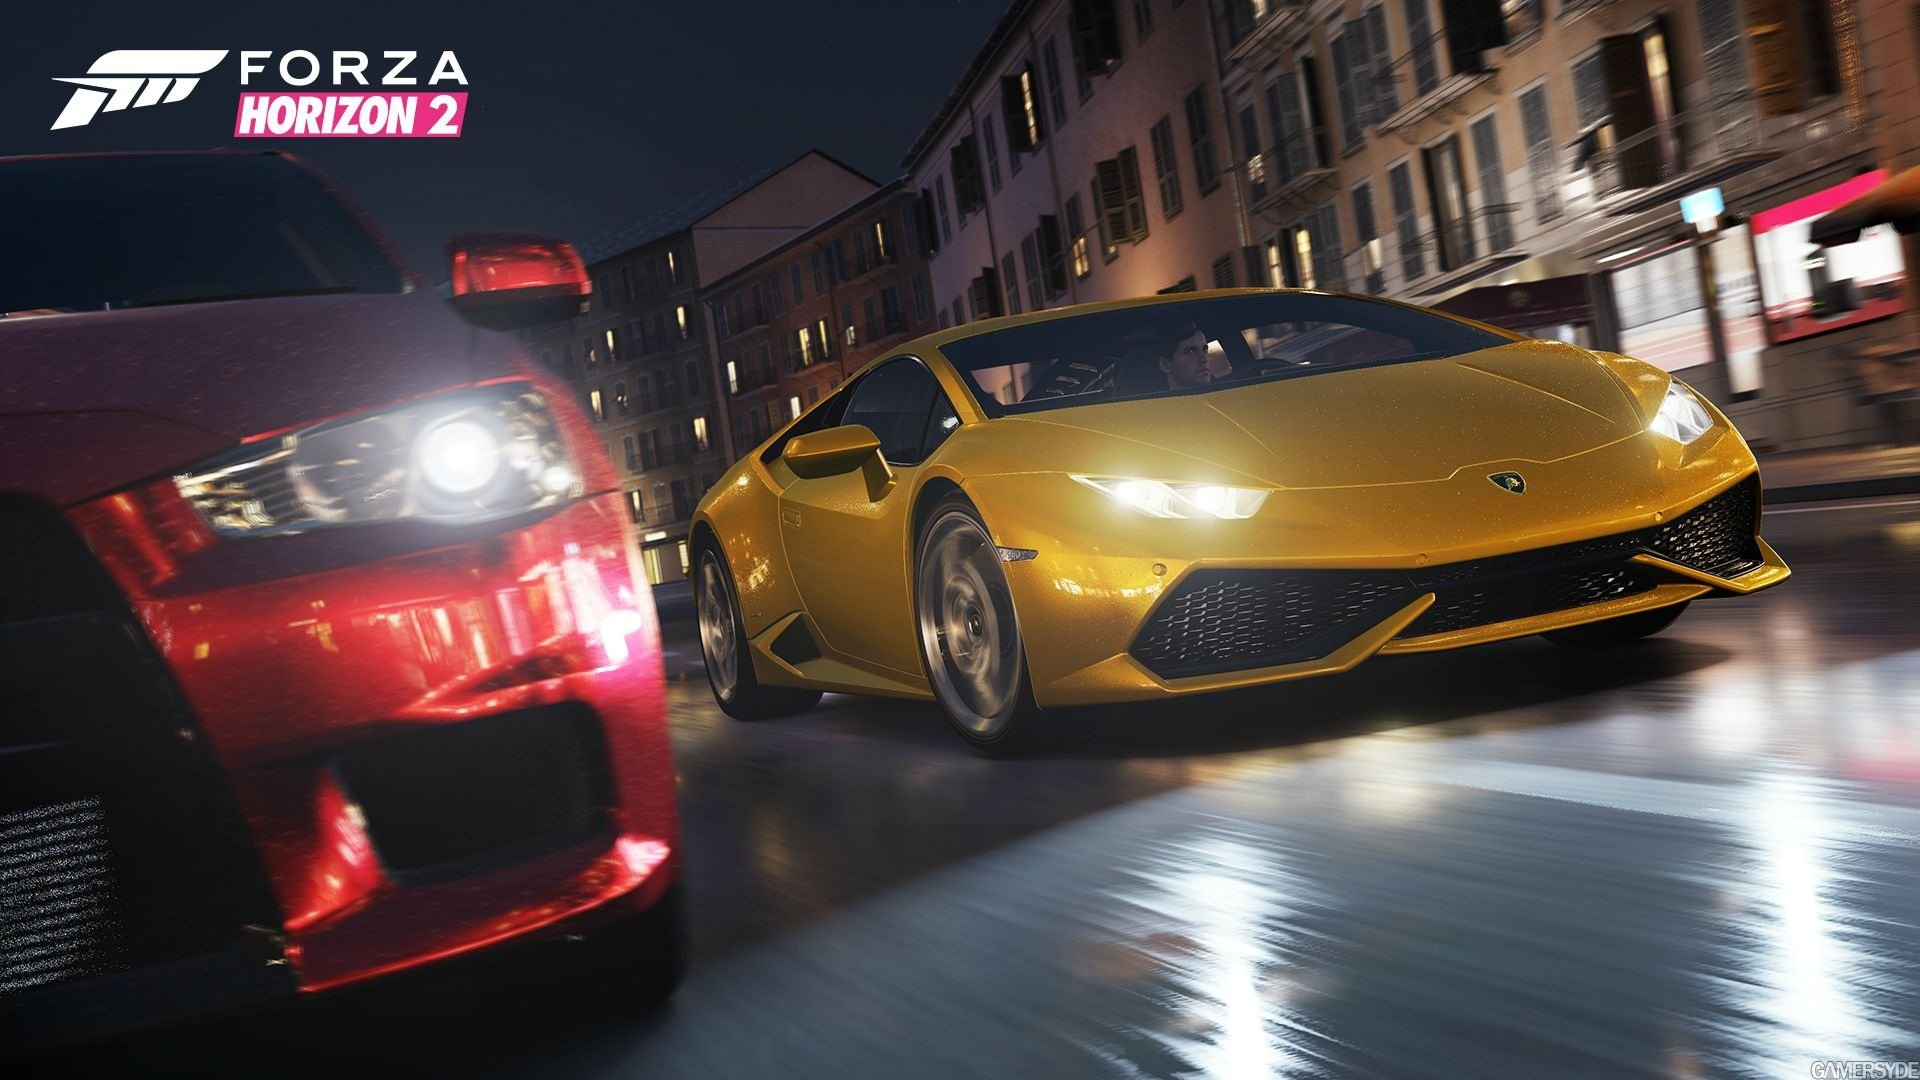 145 Forza Horizon 2 HD Wallpapers Background Images   Wallpaper 1920x1080